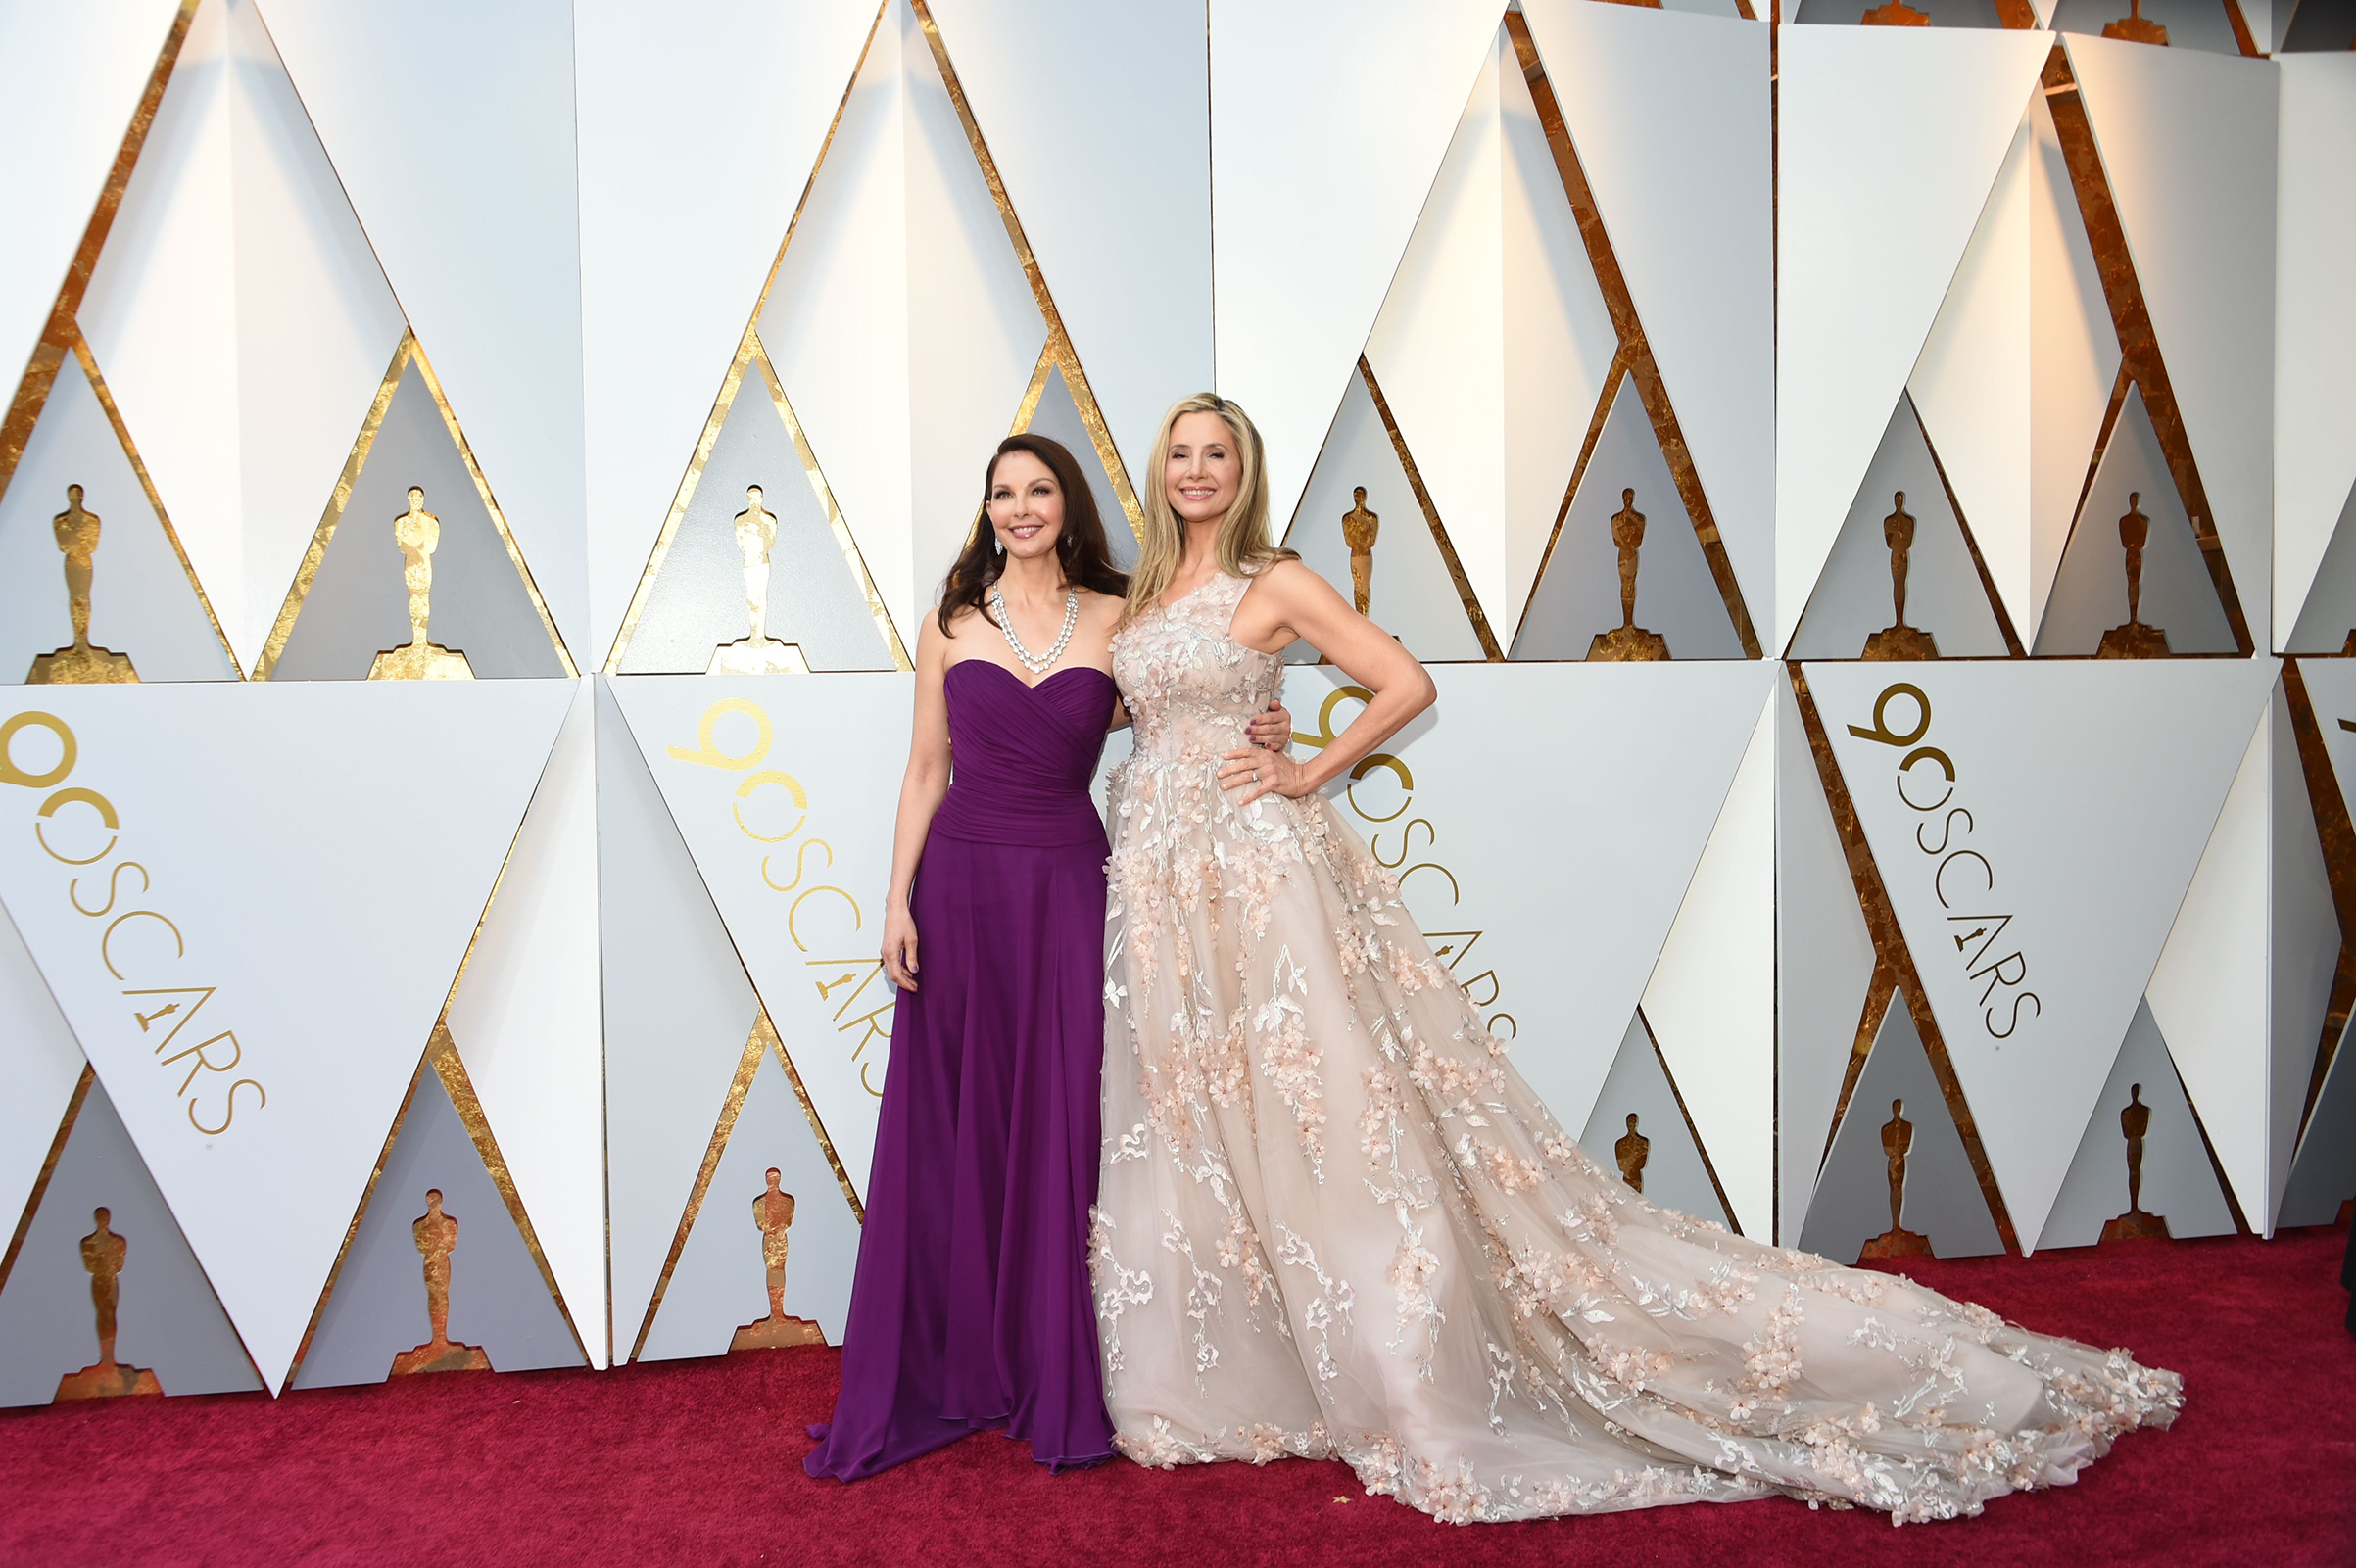 Ashley Judd and Mira Sorvino arrive for the 90th Annual Academy Awards in  in Hollywood on March 4, 2018.